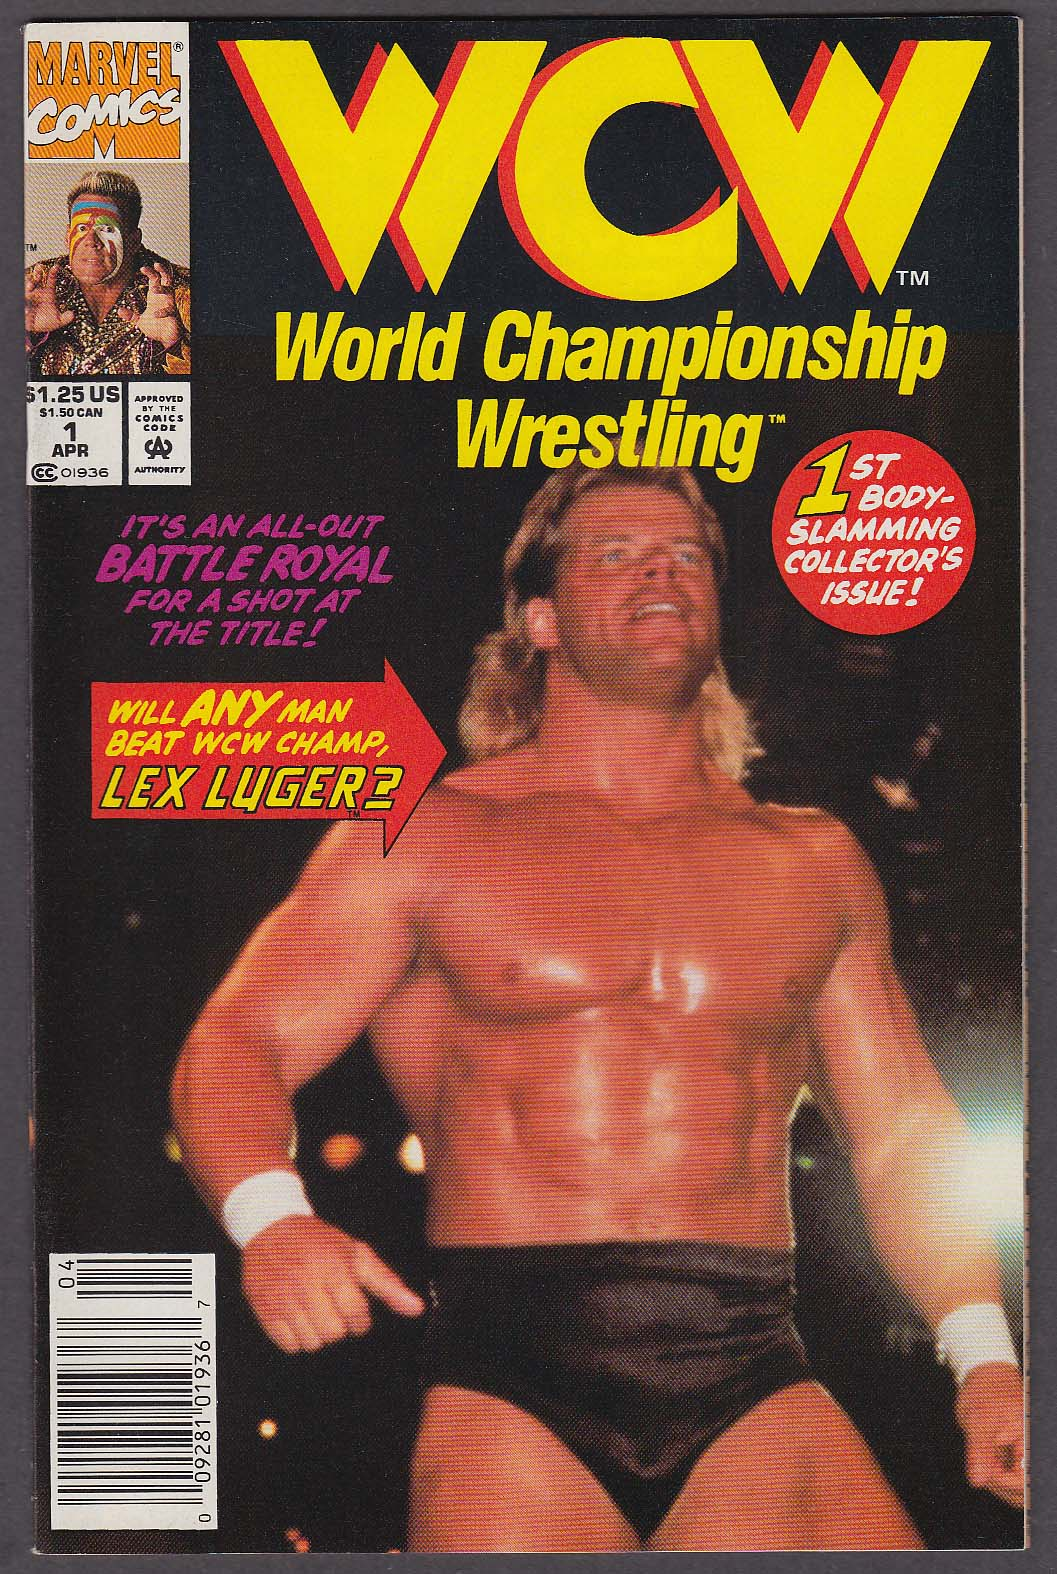 WCW WORLD CHAMPIONSHIP WRESTLING #1 Marvel comic book 4 1992 Lex Luger